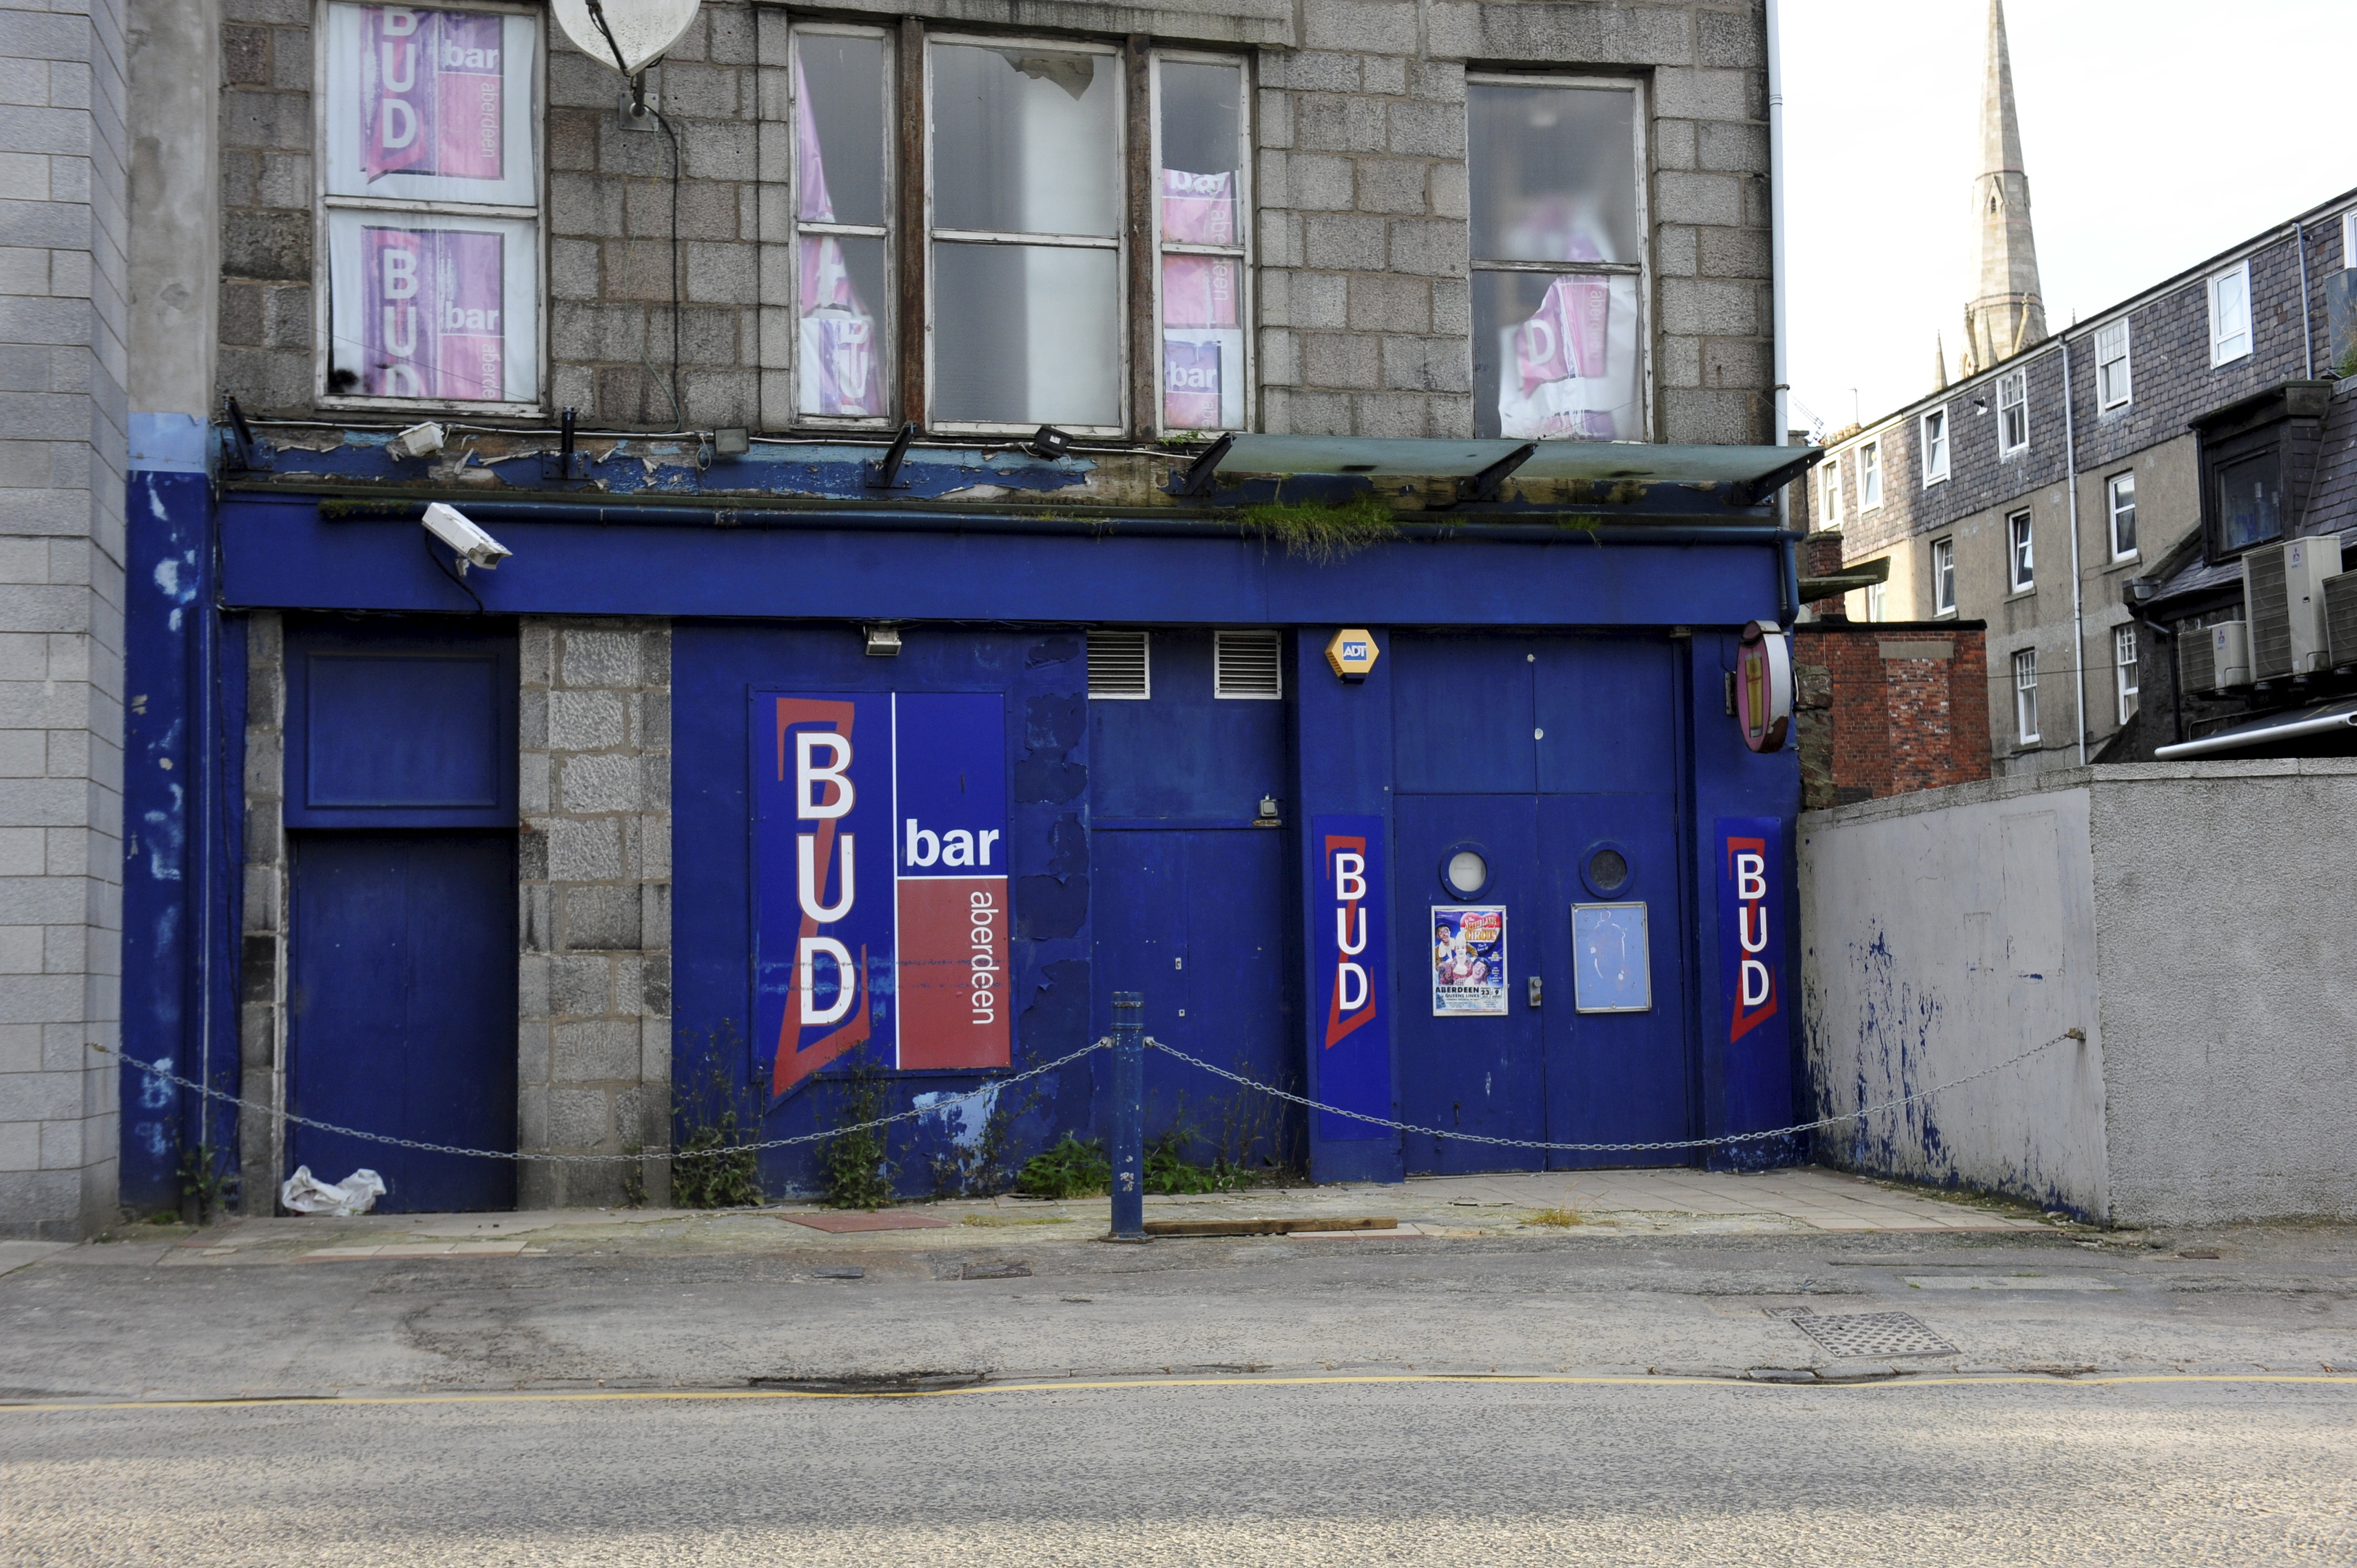 The Budz Bar site on Justice Mill Lane